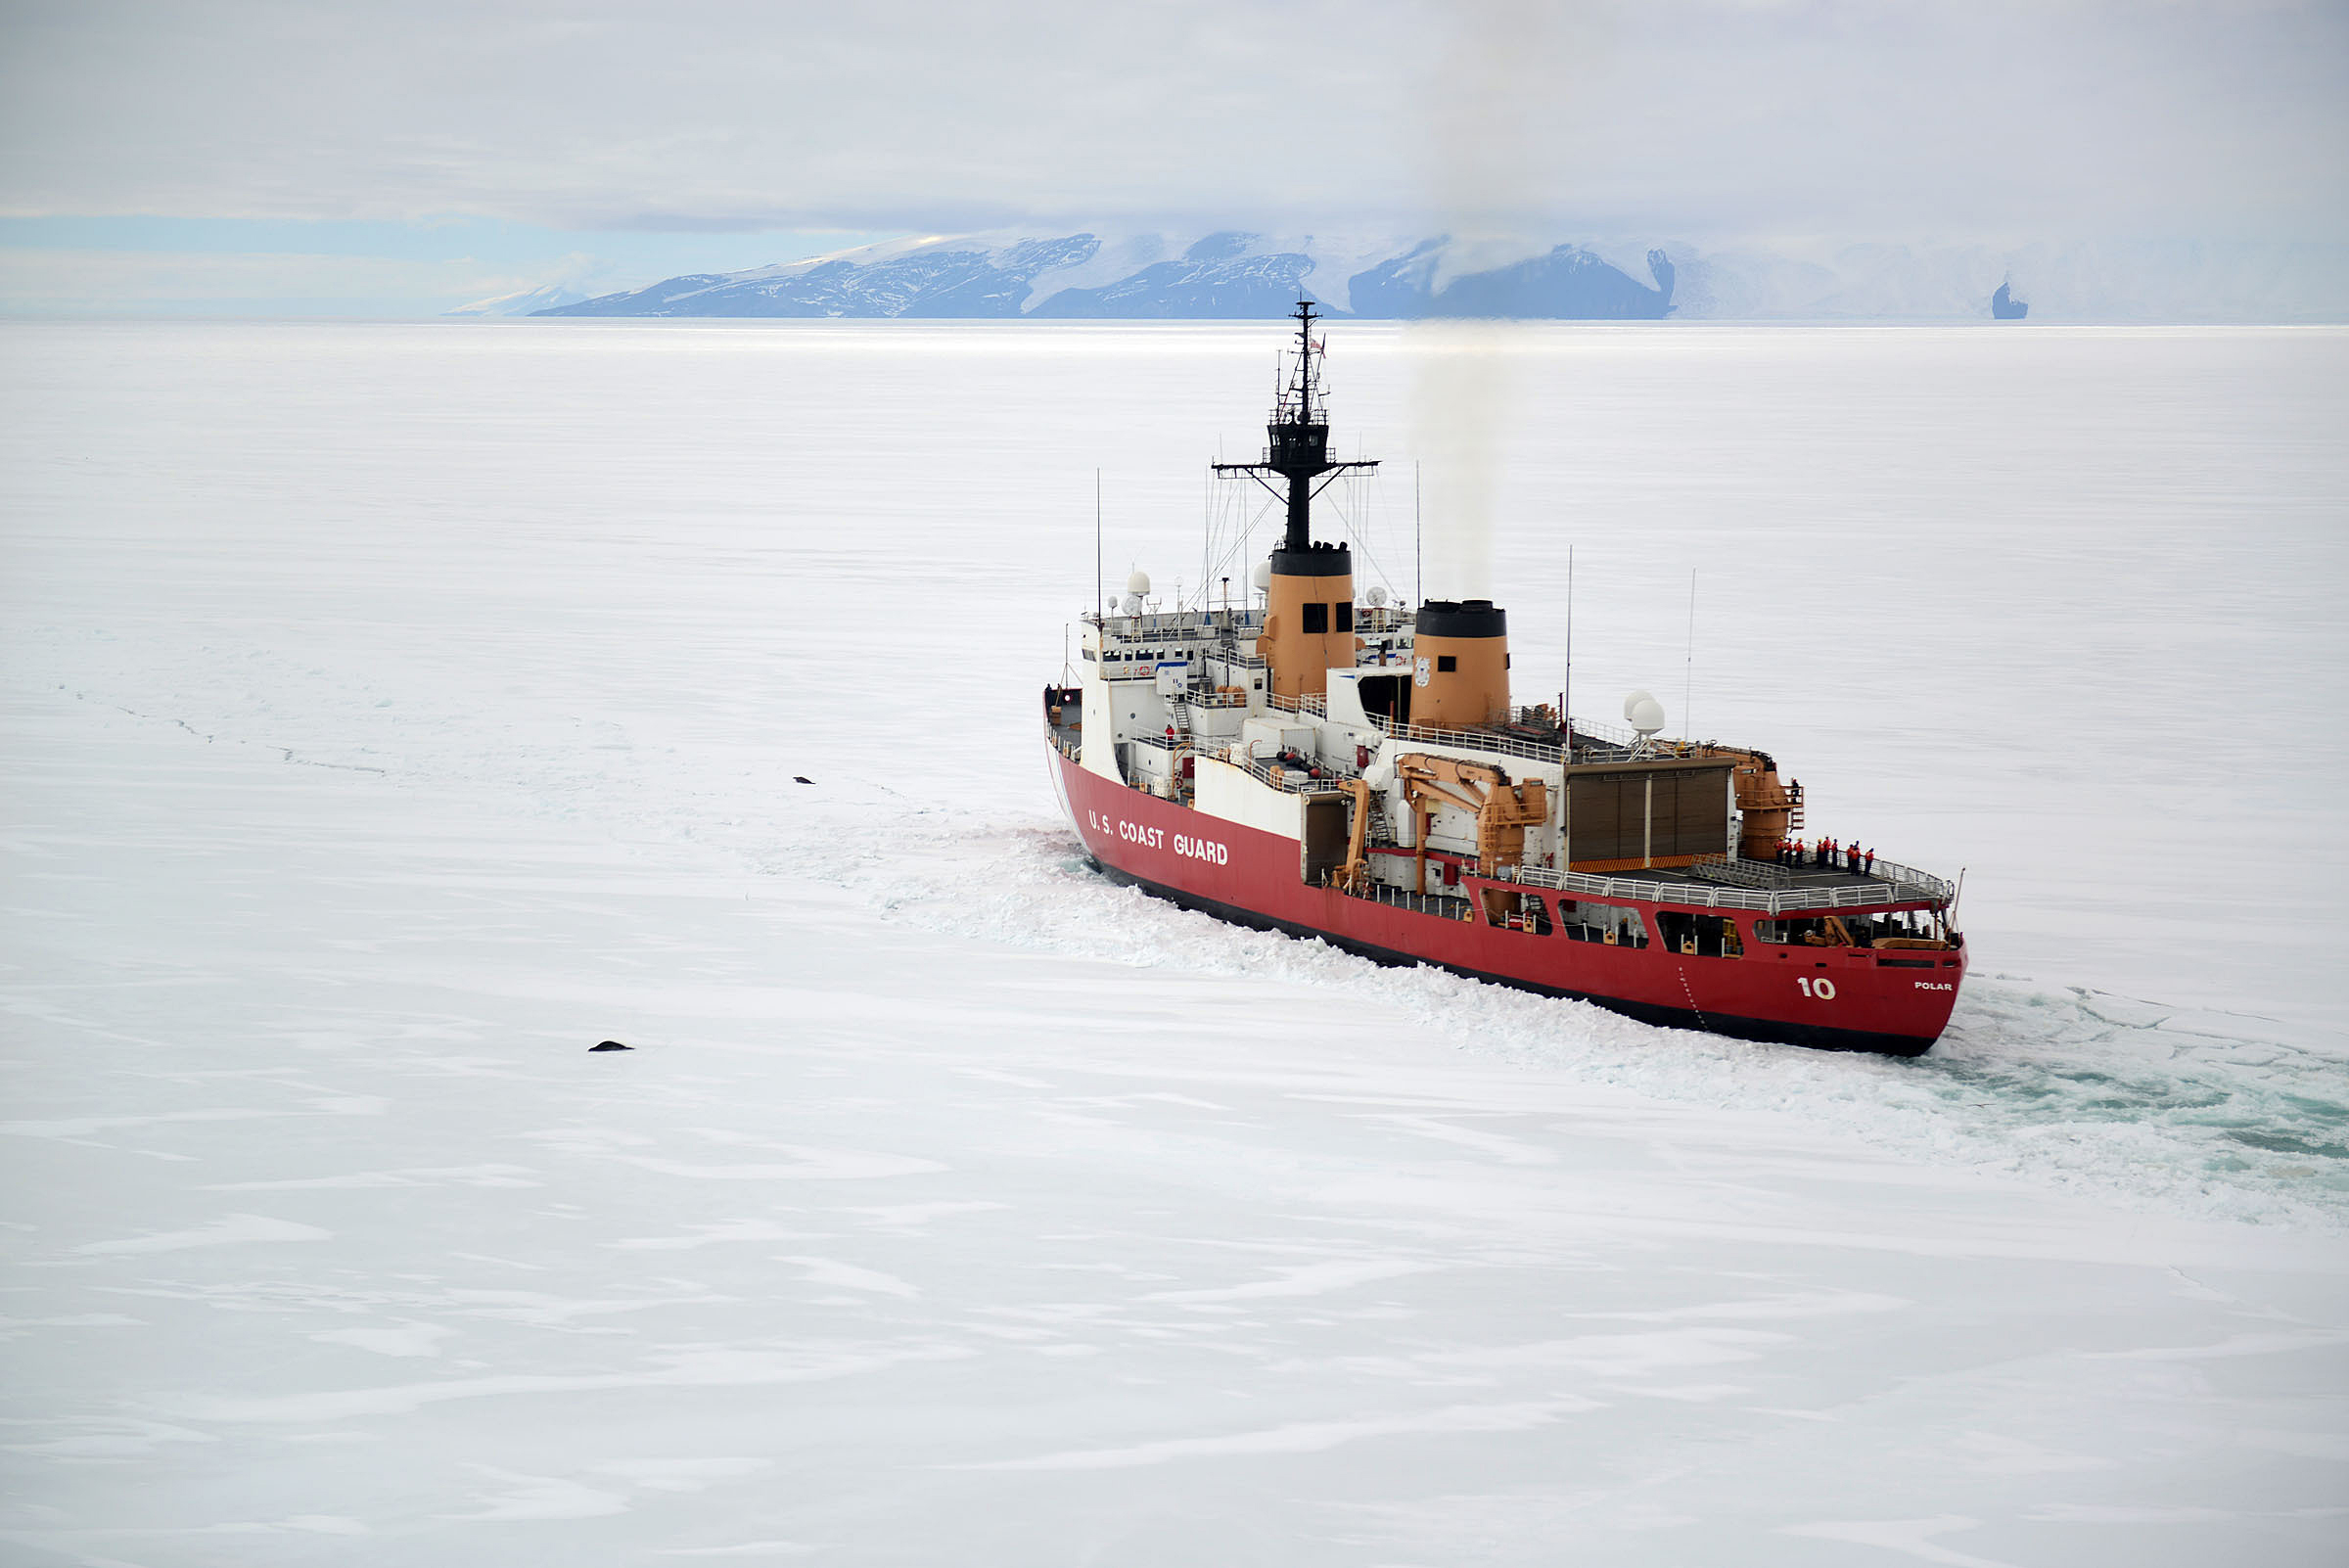 ff74b8ee99d The U.S. urgently needs new icebreaker ships to patrol the Arctic. Will Trump's  border wall get in the way?